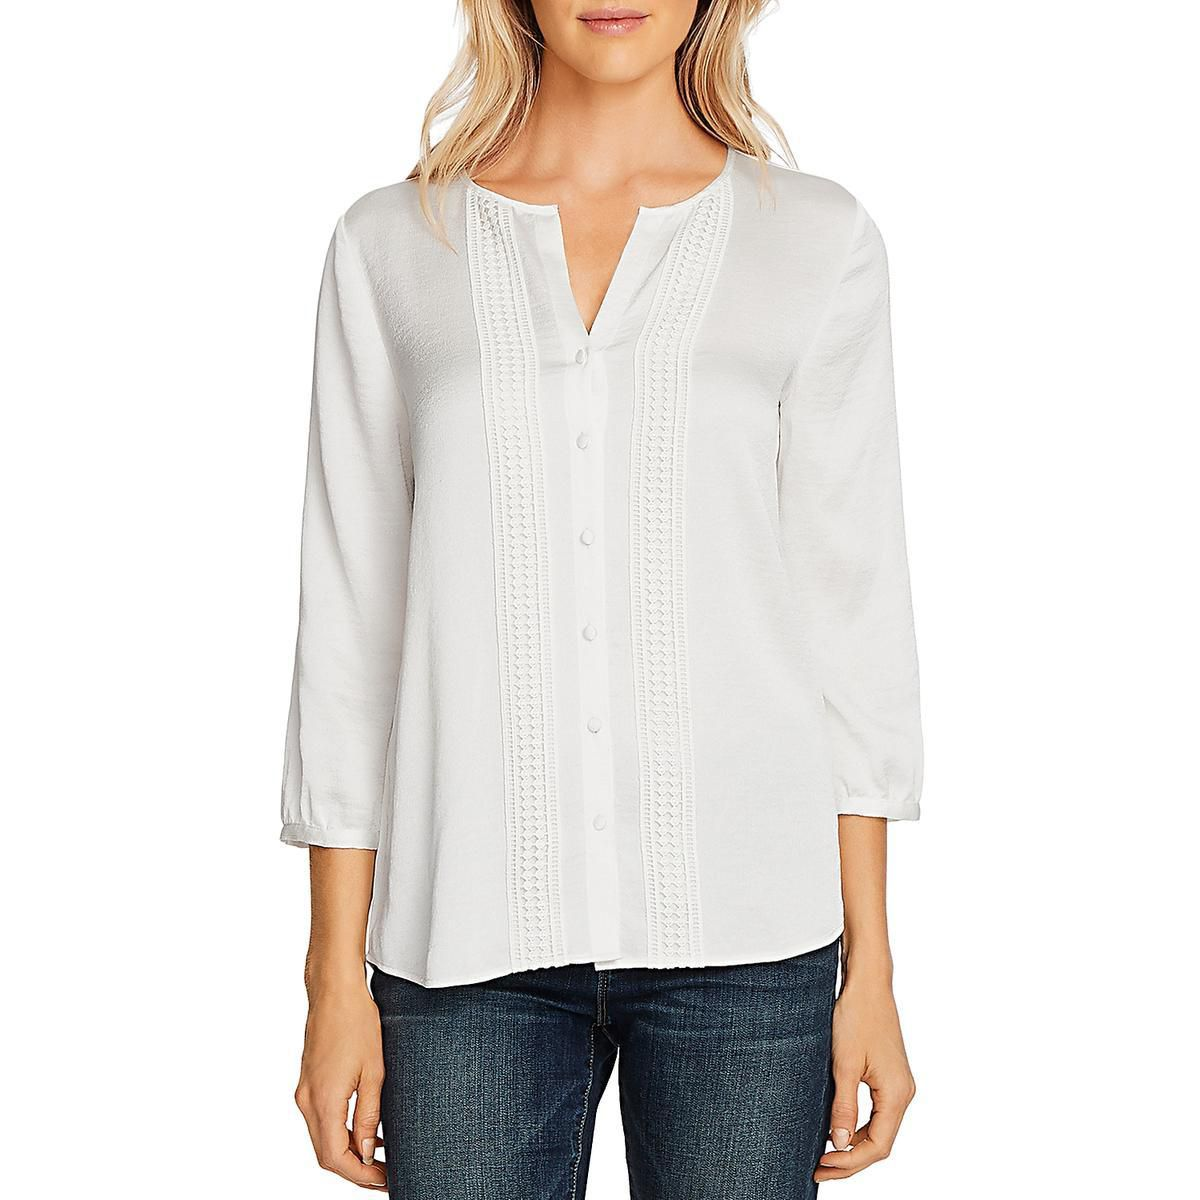 Vince Camuto Womens Button Down Shirt Ivory Size Medium